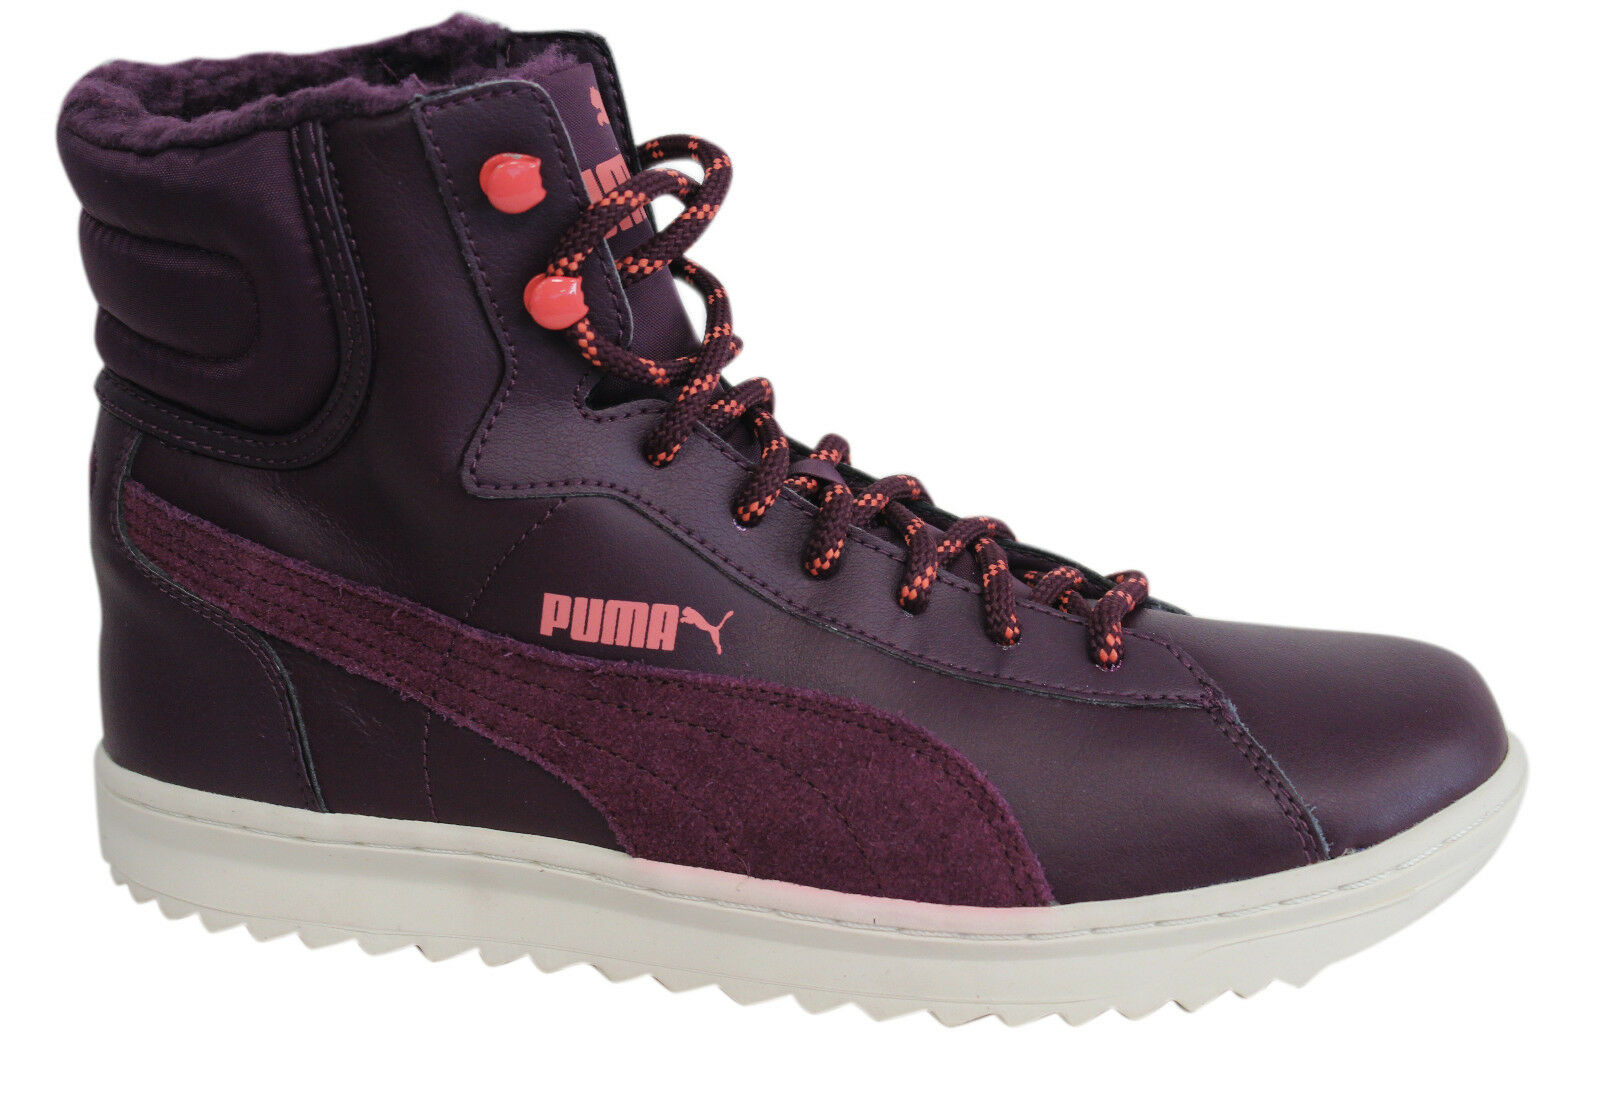 Puma Vikky Mid Lace Up Leder Dark Purple Purple Dark Damenschuhe Stiefel Trainers 356732 01 D67 04330e